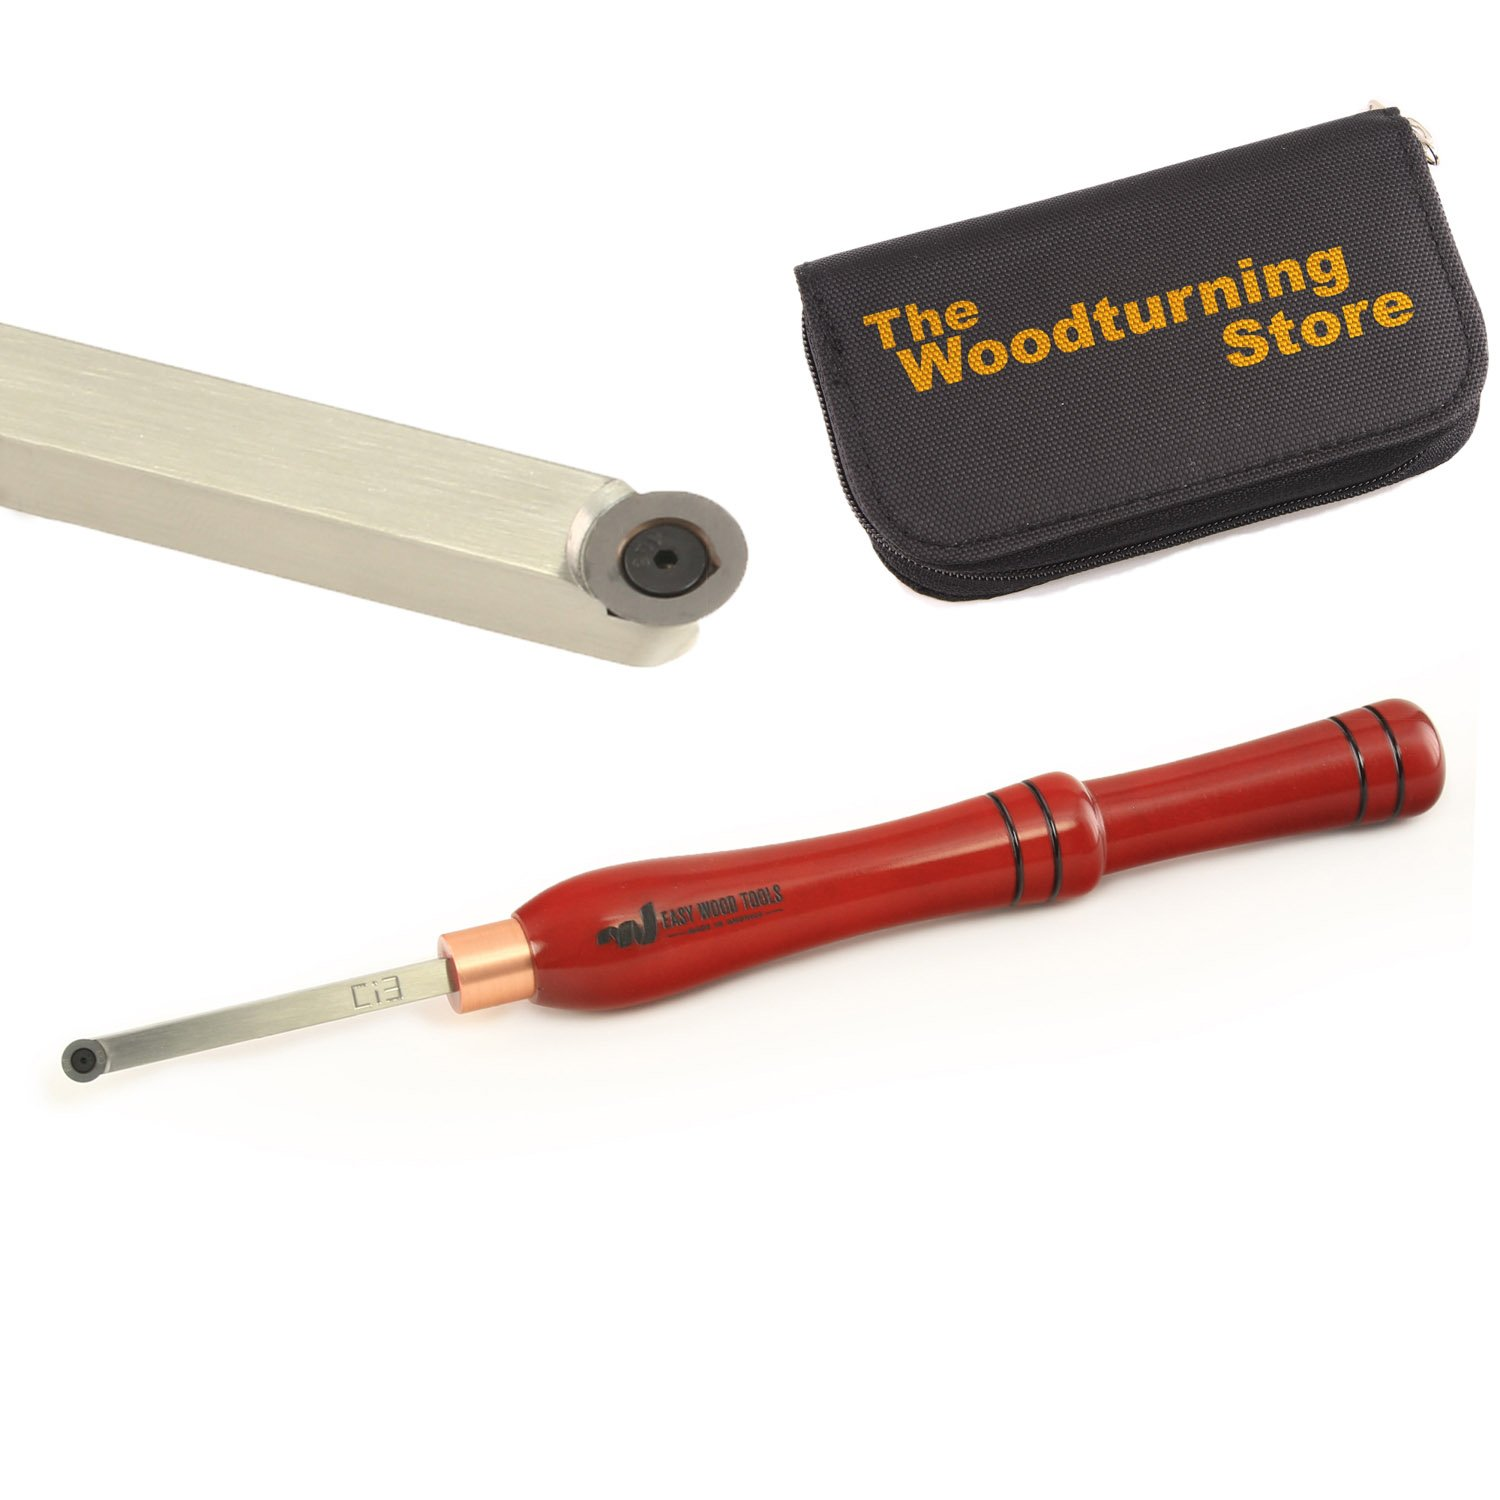 Easy Wood Tools, 6200, Mini Easy Finisher with BONUS Woodturning Store Carbide Cutter Holder